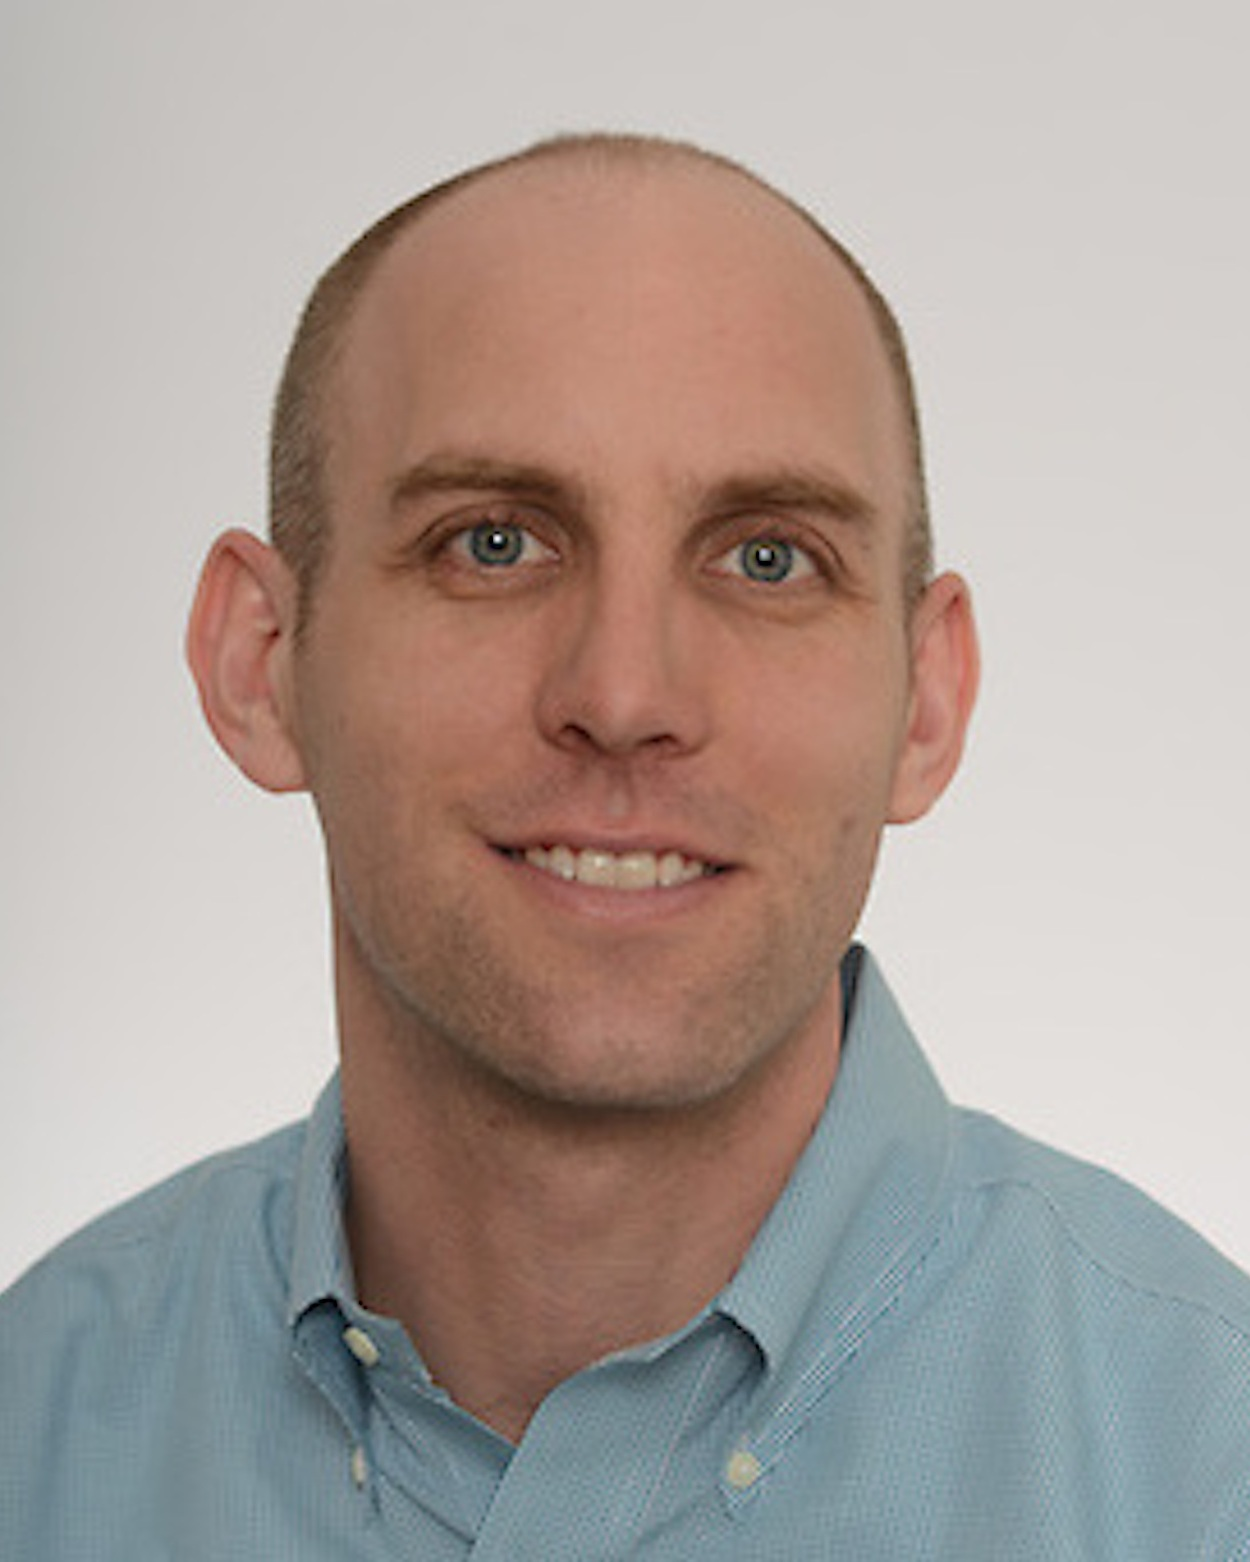 Evan Anderson,JD, PhDPublic Health Law Researcher - UPENN Schools of Nursing and Medicine